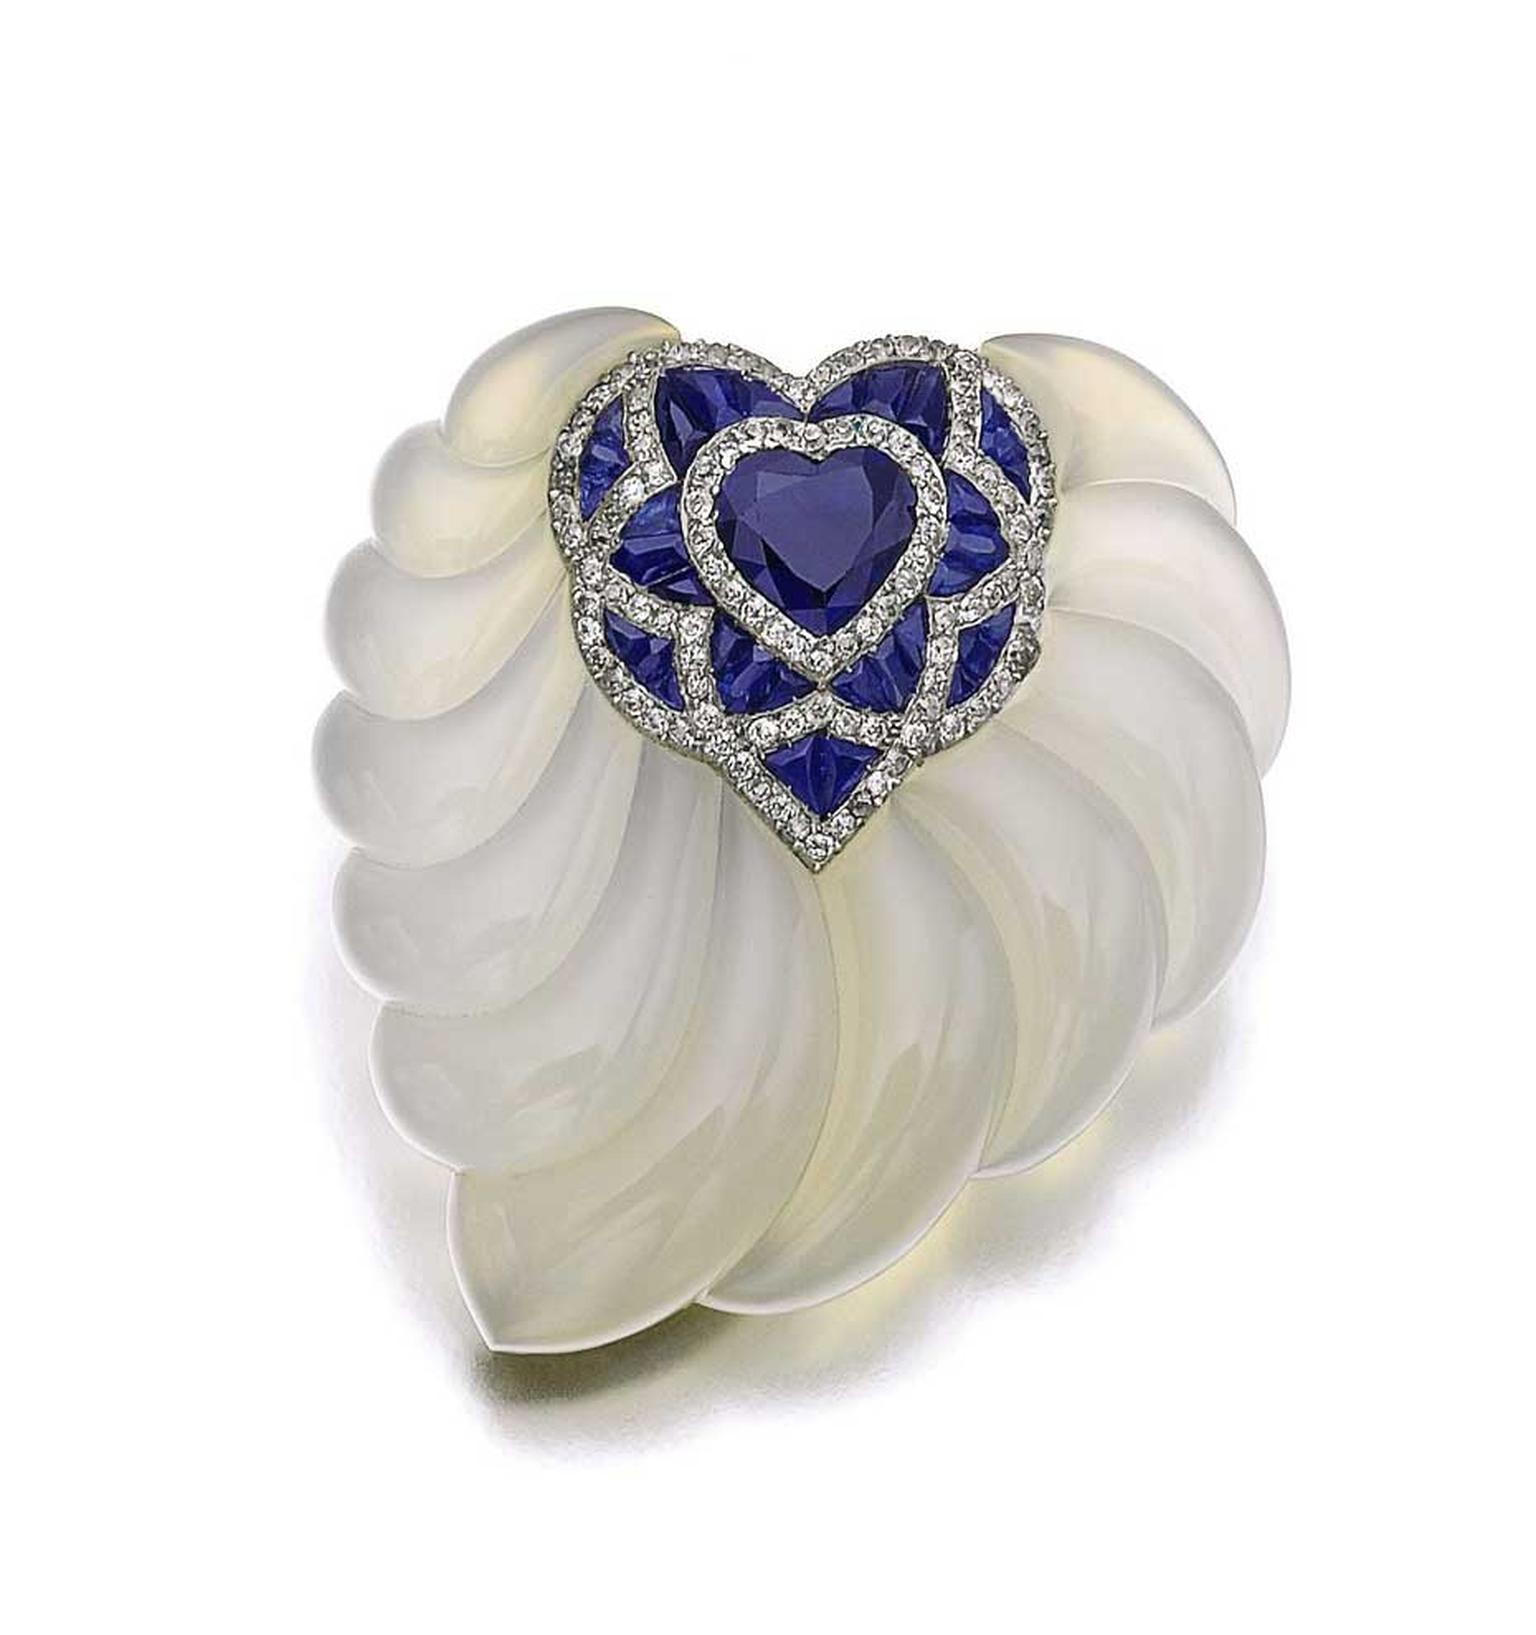 Suzanne Belperron Chalcedony sapphire and diamond brooch (estimate: CHF 22,000 - 28,000/$24,920 - 31,716)